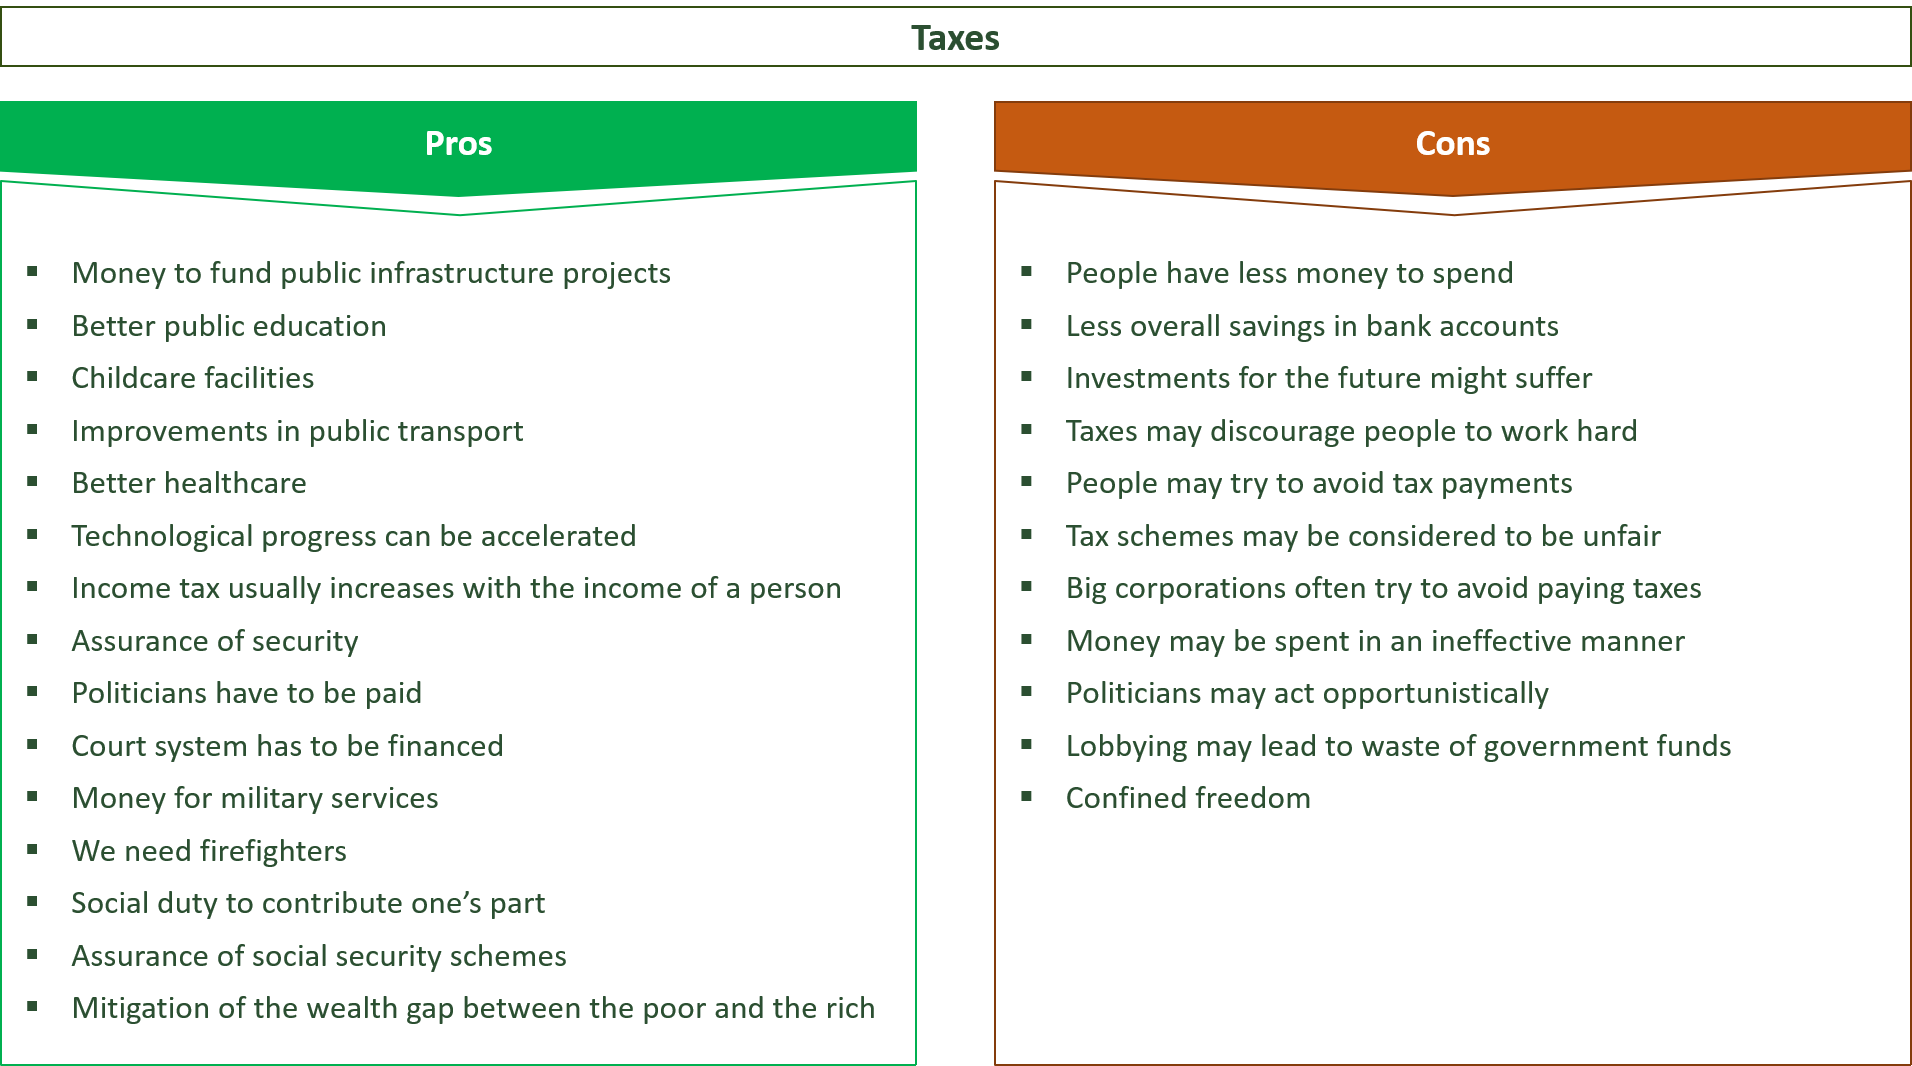 advantages and disadvantages of taxes